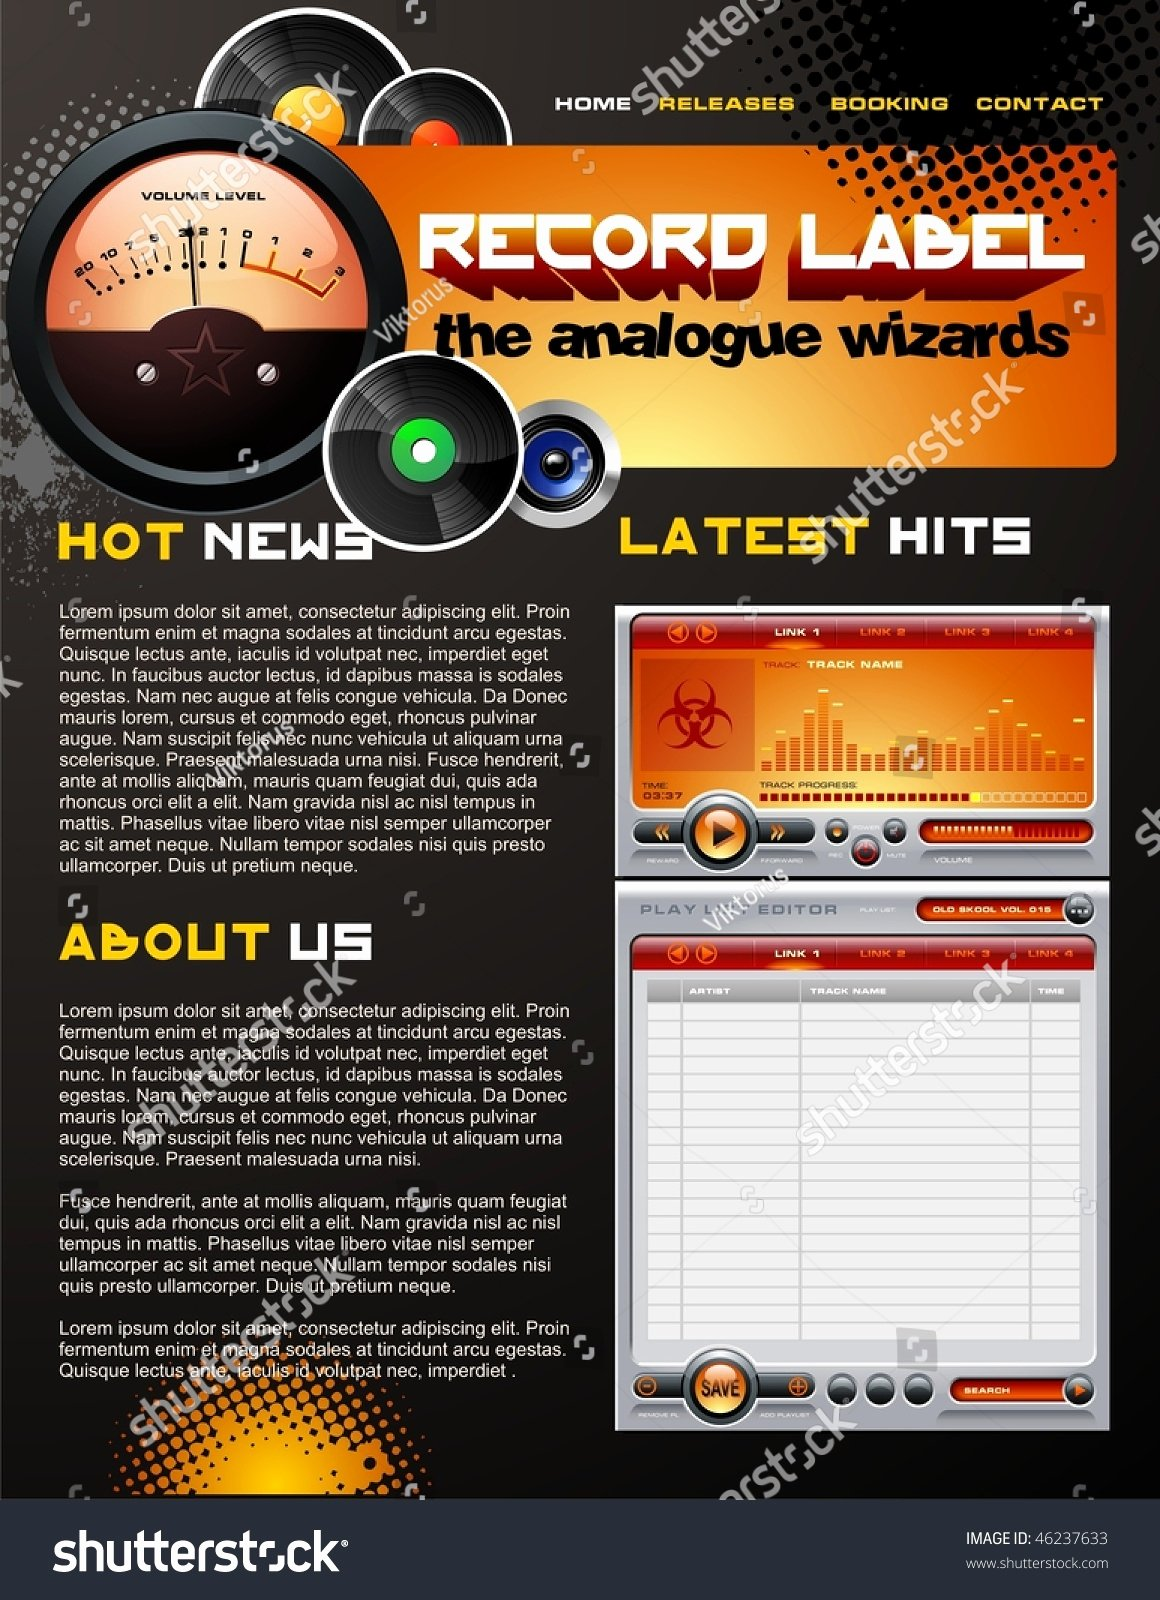 Record Label Web Template Best Of Record Label Web Design Template Stock Vector Illustration